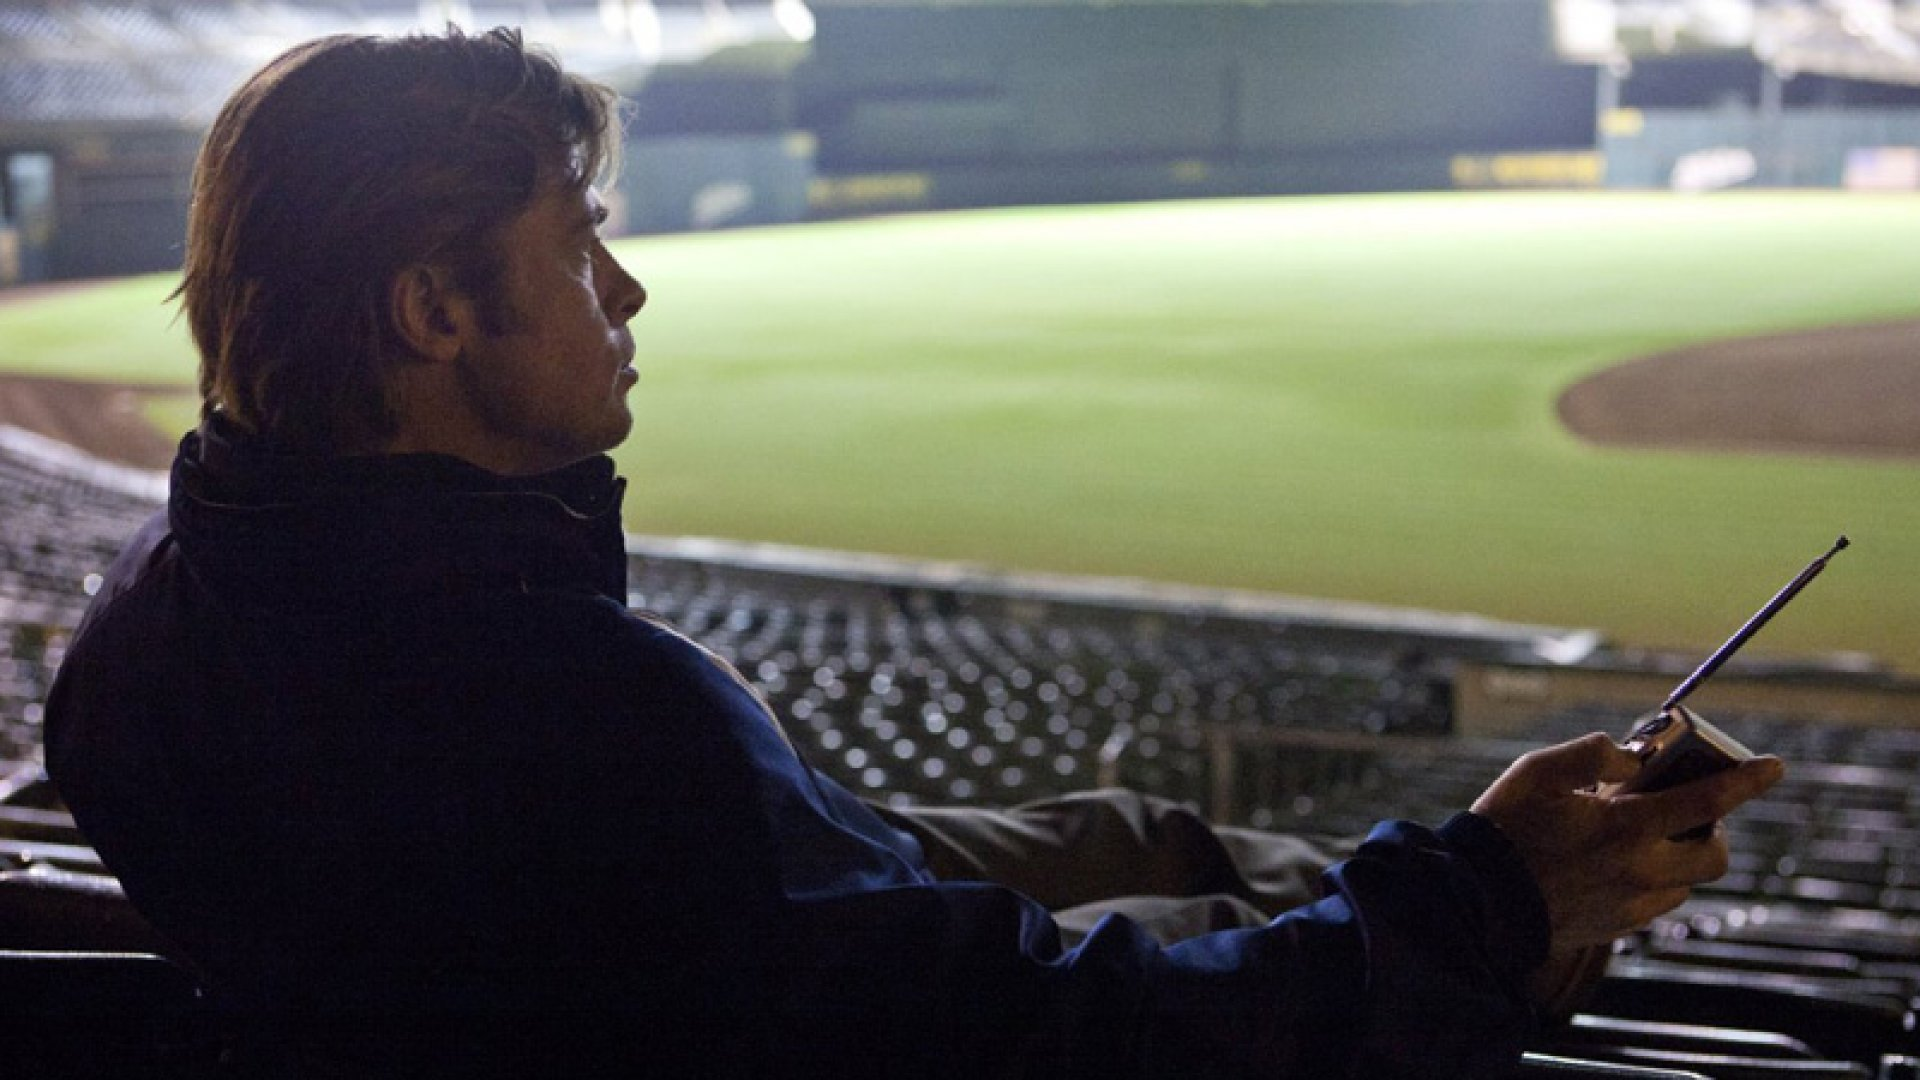 15 Surprisingly Inspirational Business Takeaways From 'Moneyball'